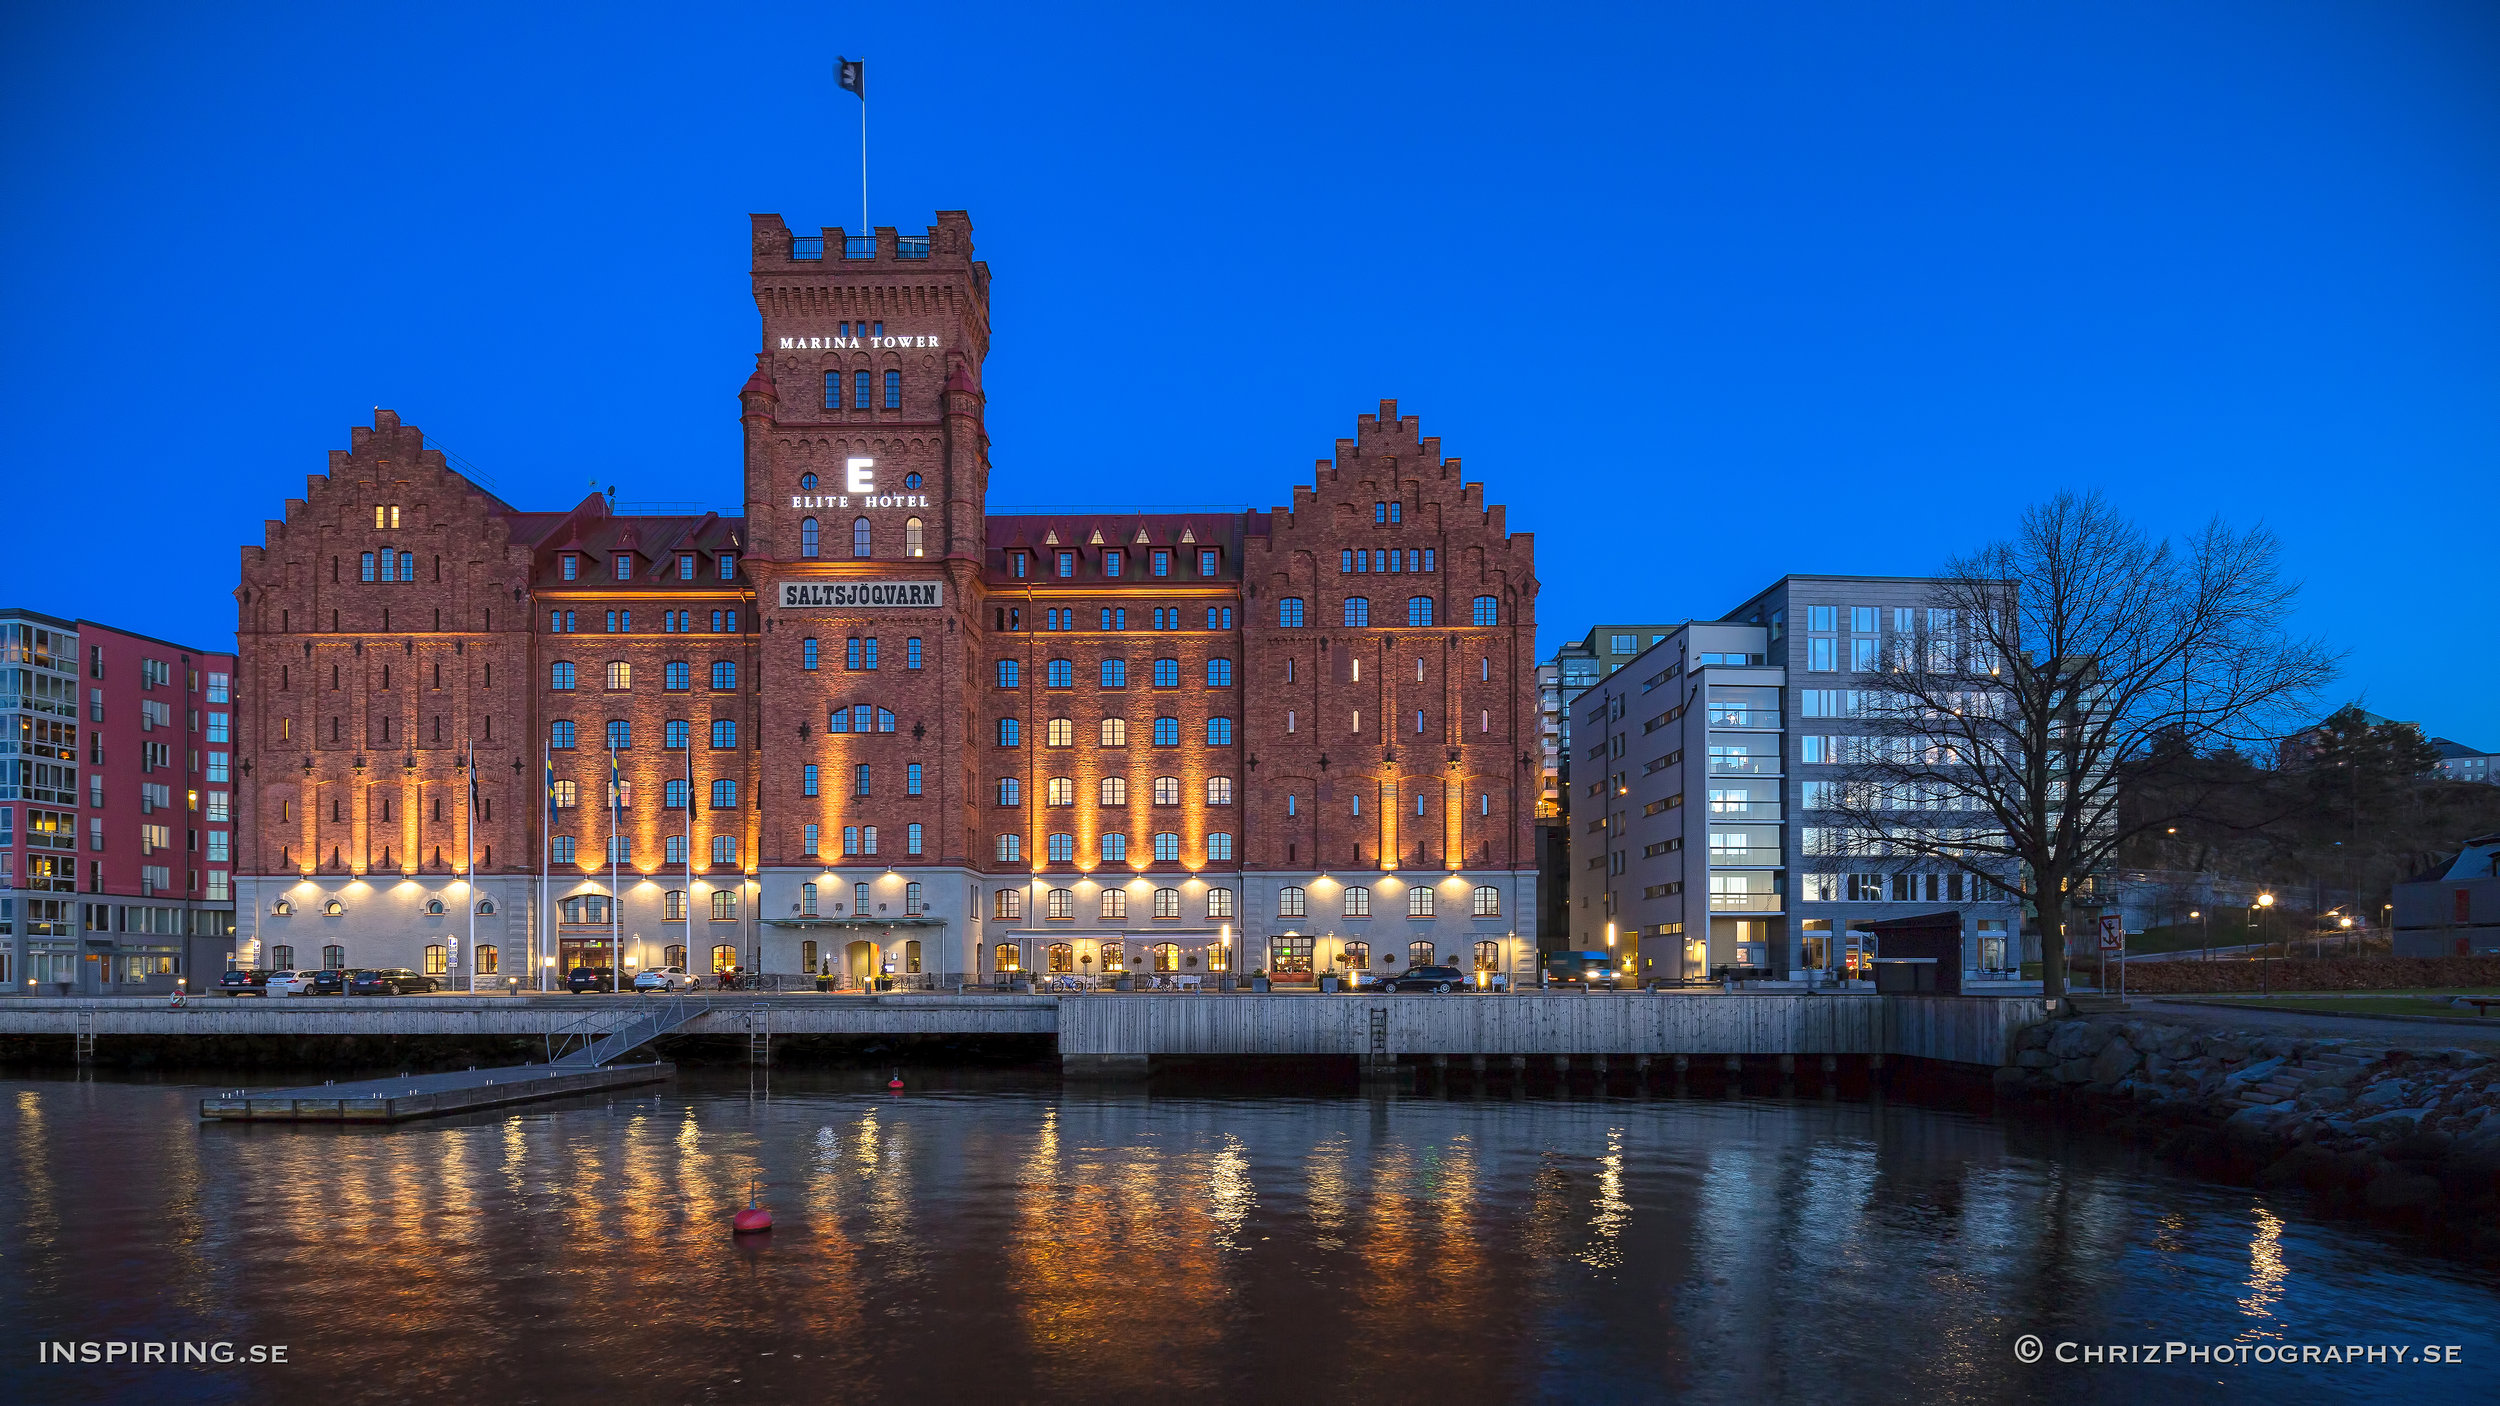 Elite_Hotel_Marina_Tower_Inspiring.se_copyright_ChrizPhotography.se_3.jpg